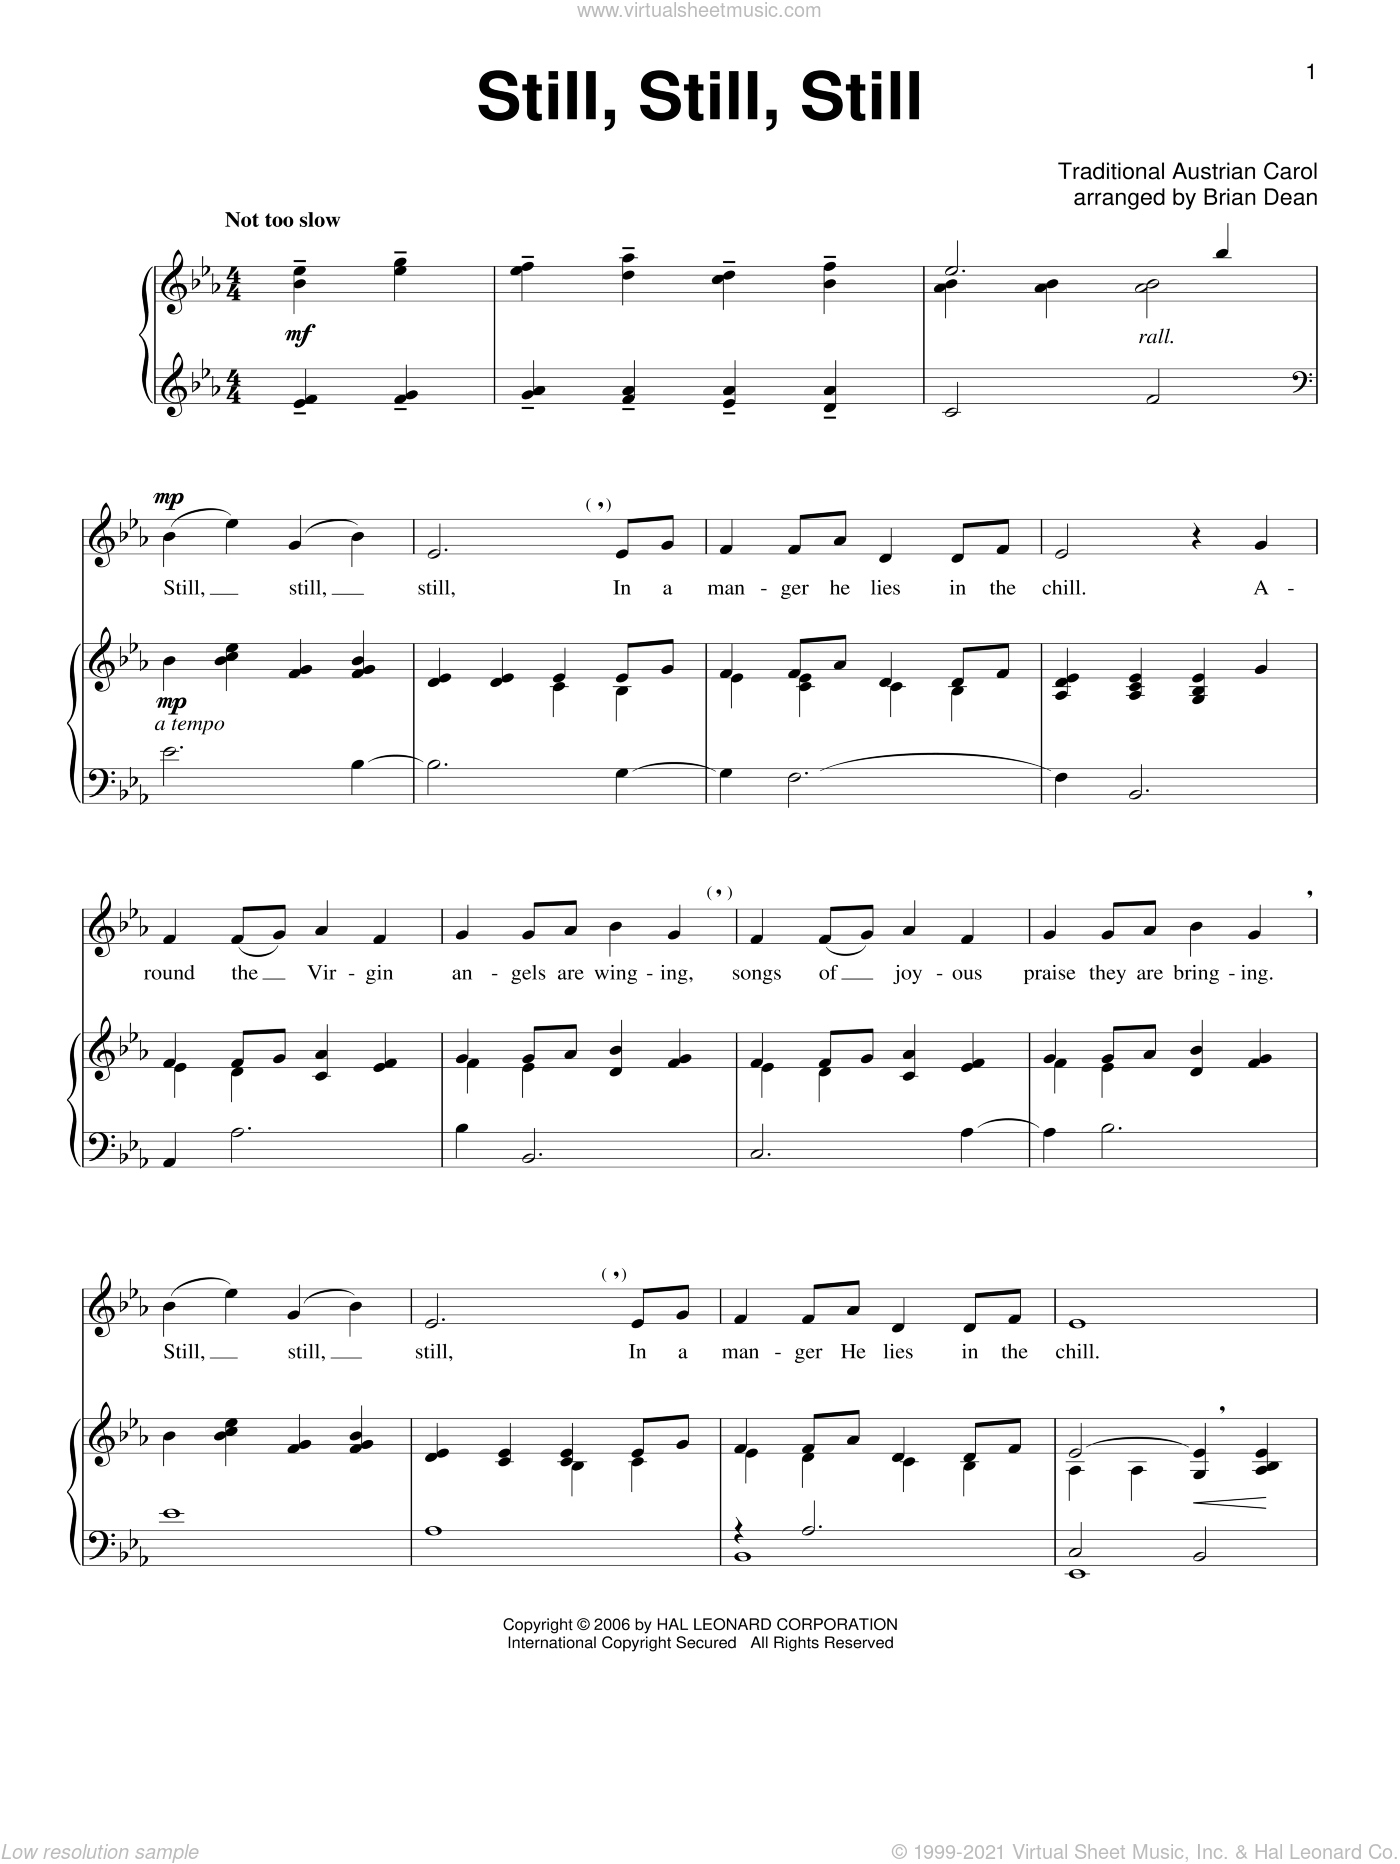 Still, Still, Still sheet music for voice and piano  and Salzburg Melody, intermediate